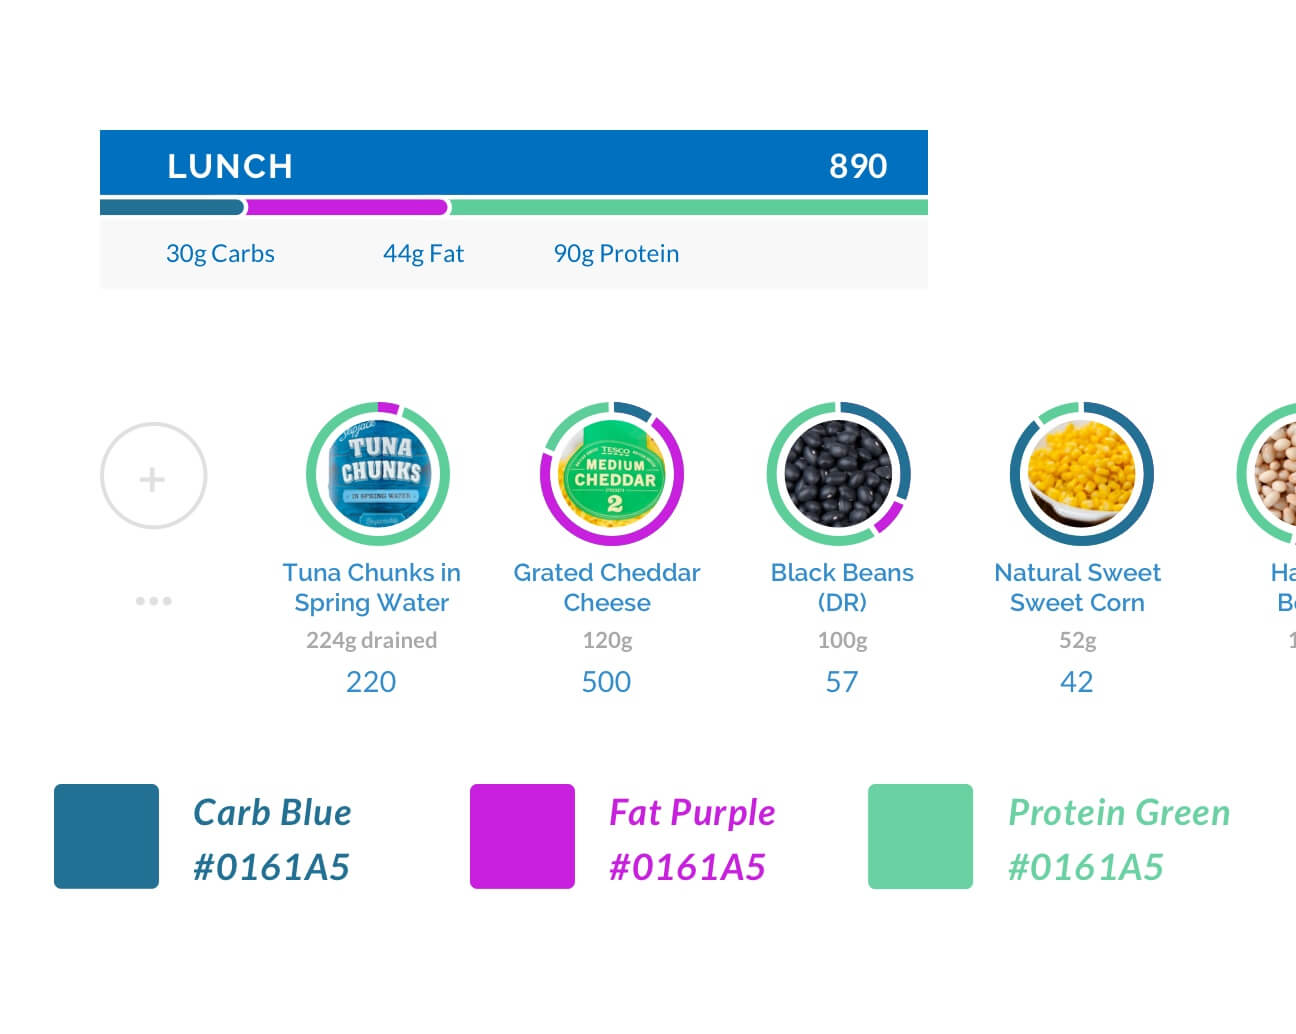 A more detailed view in how the visual representation of how nutrition is displayed